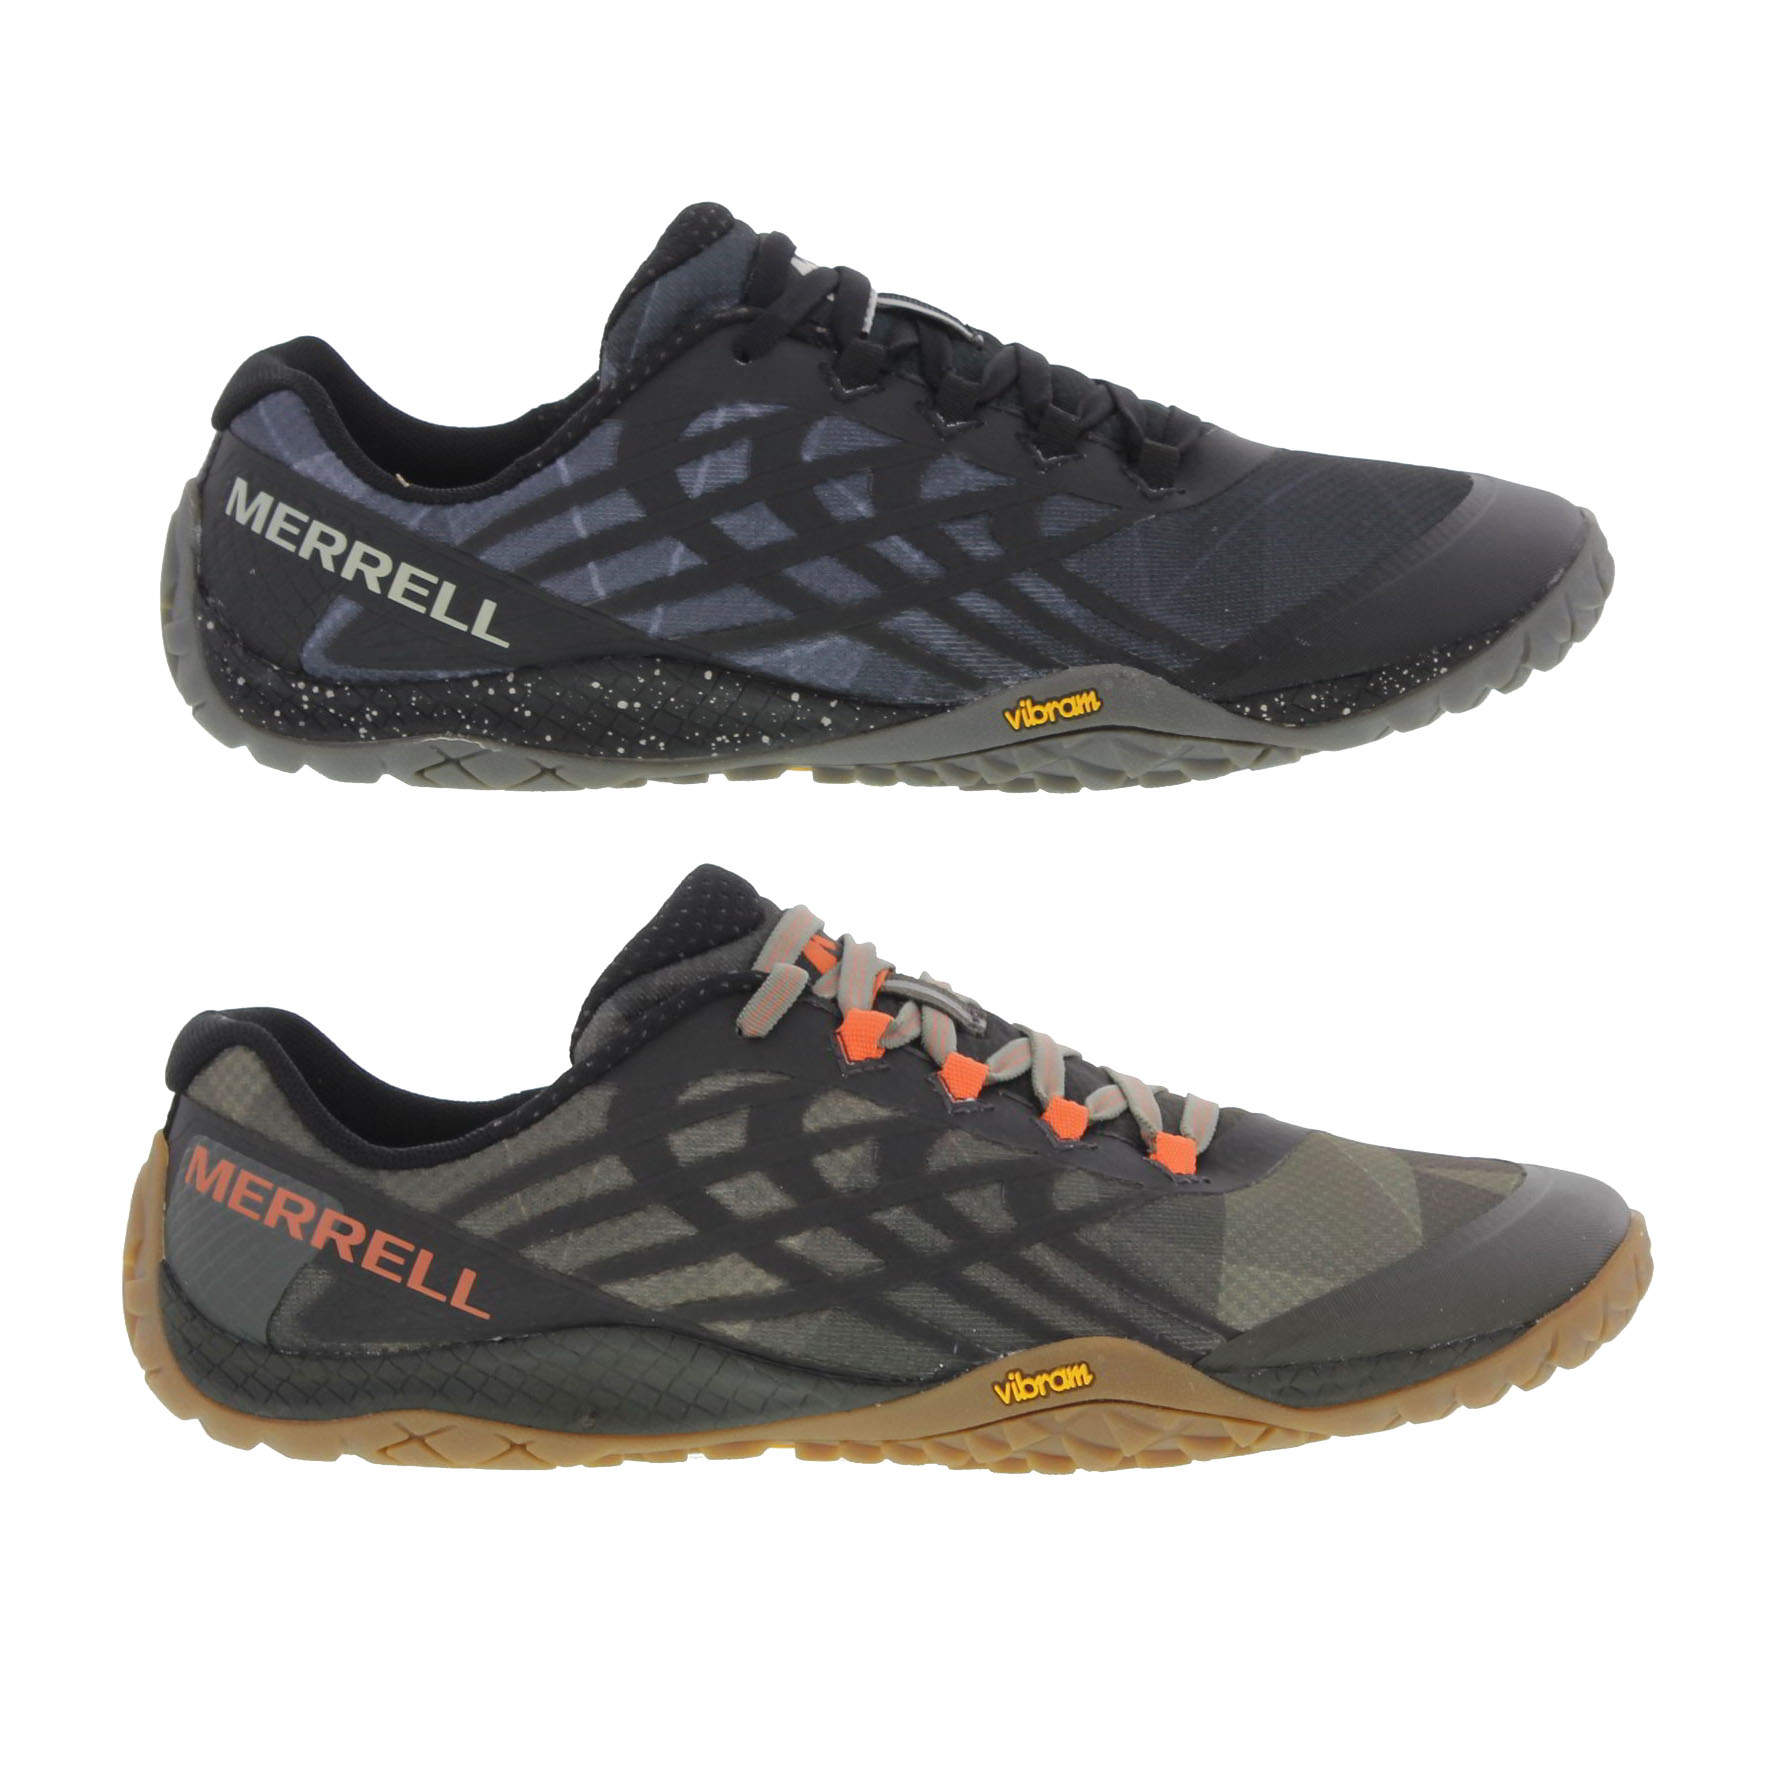 Merrell Shoes Ebay Uk